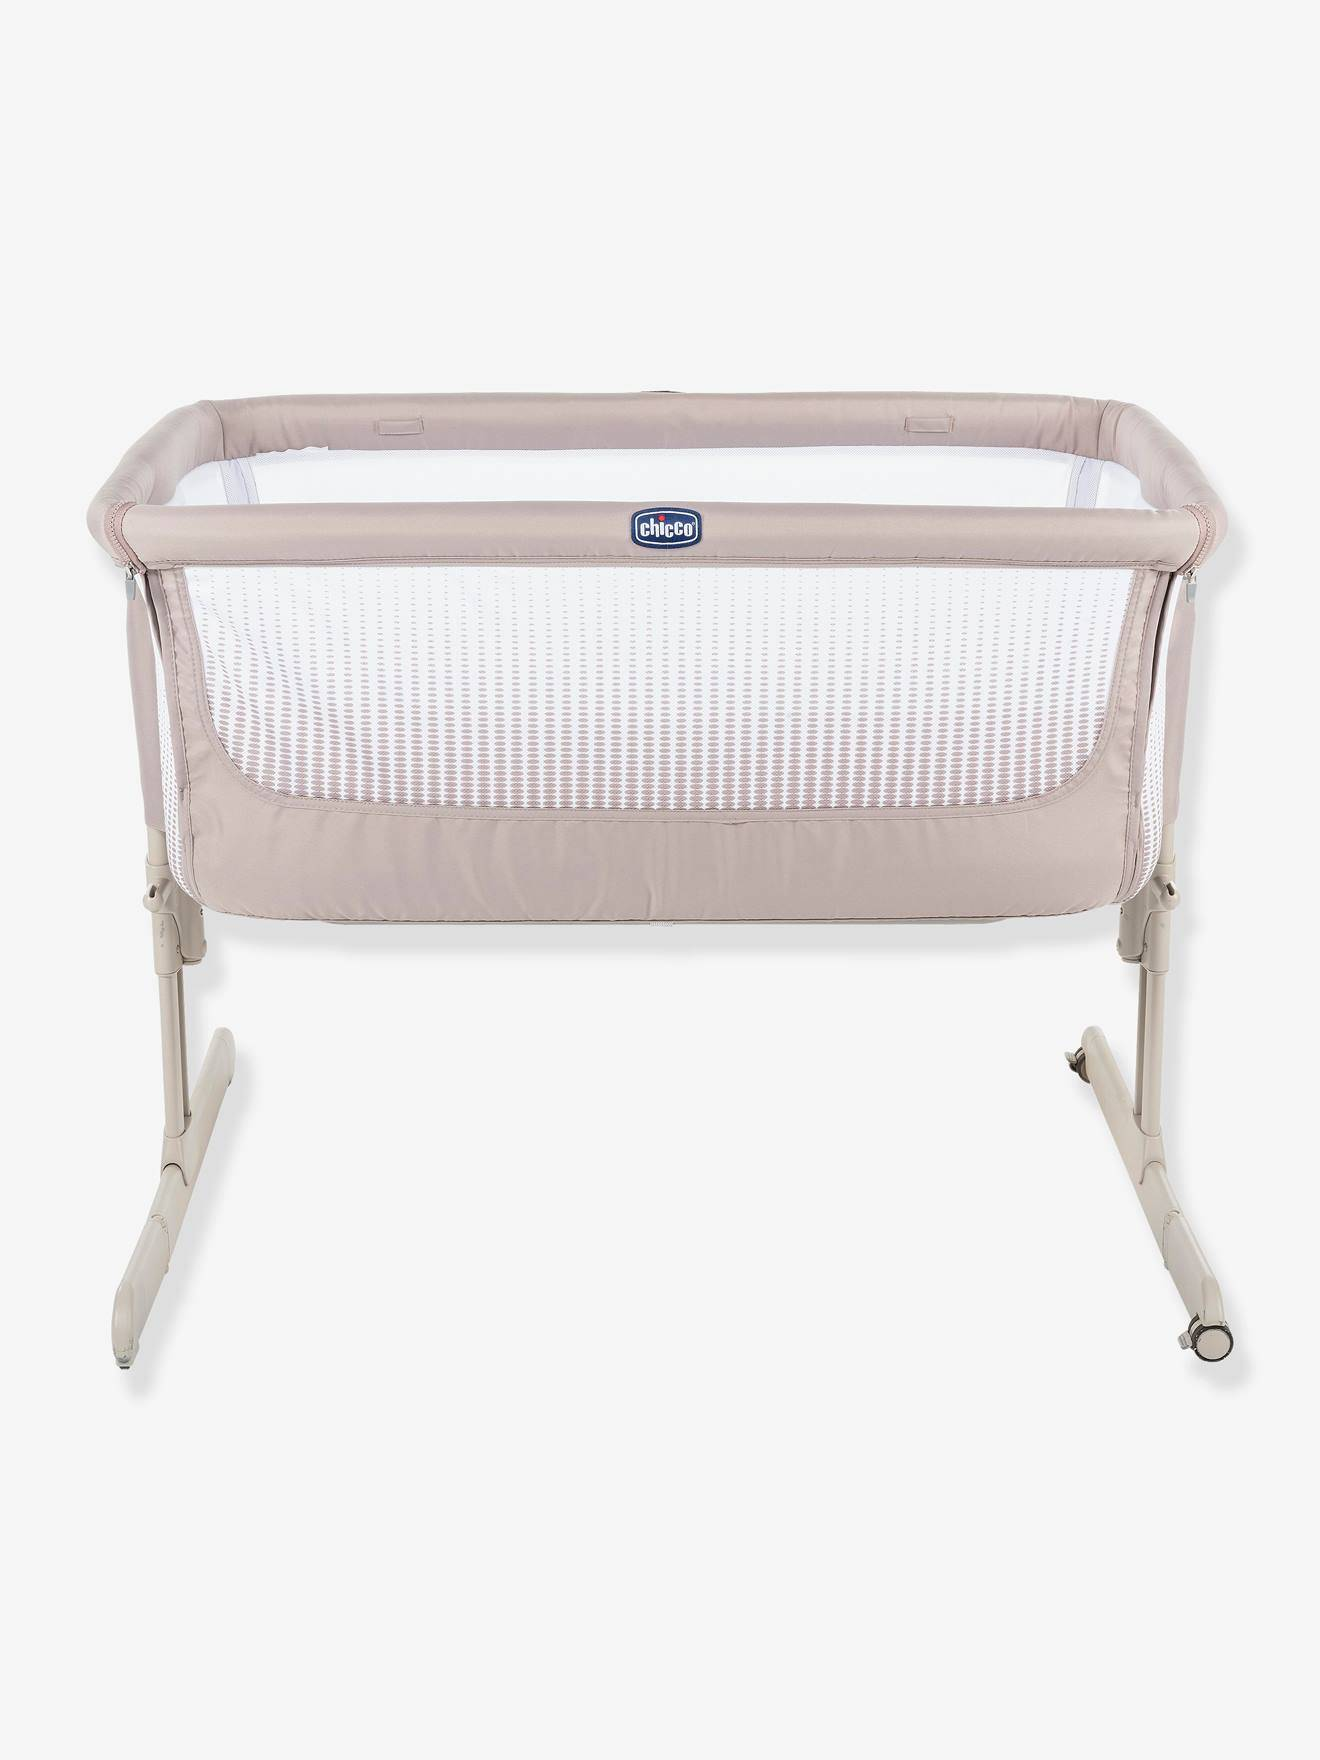 CHICCO Cuna colecho Next2me Air CHICCO beige medio liso